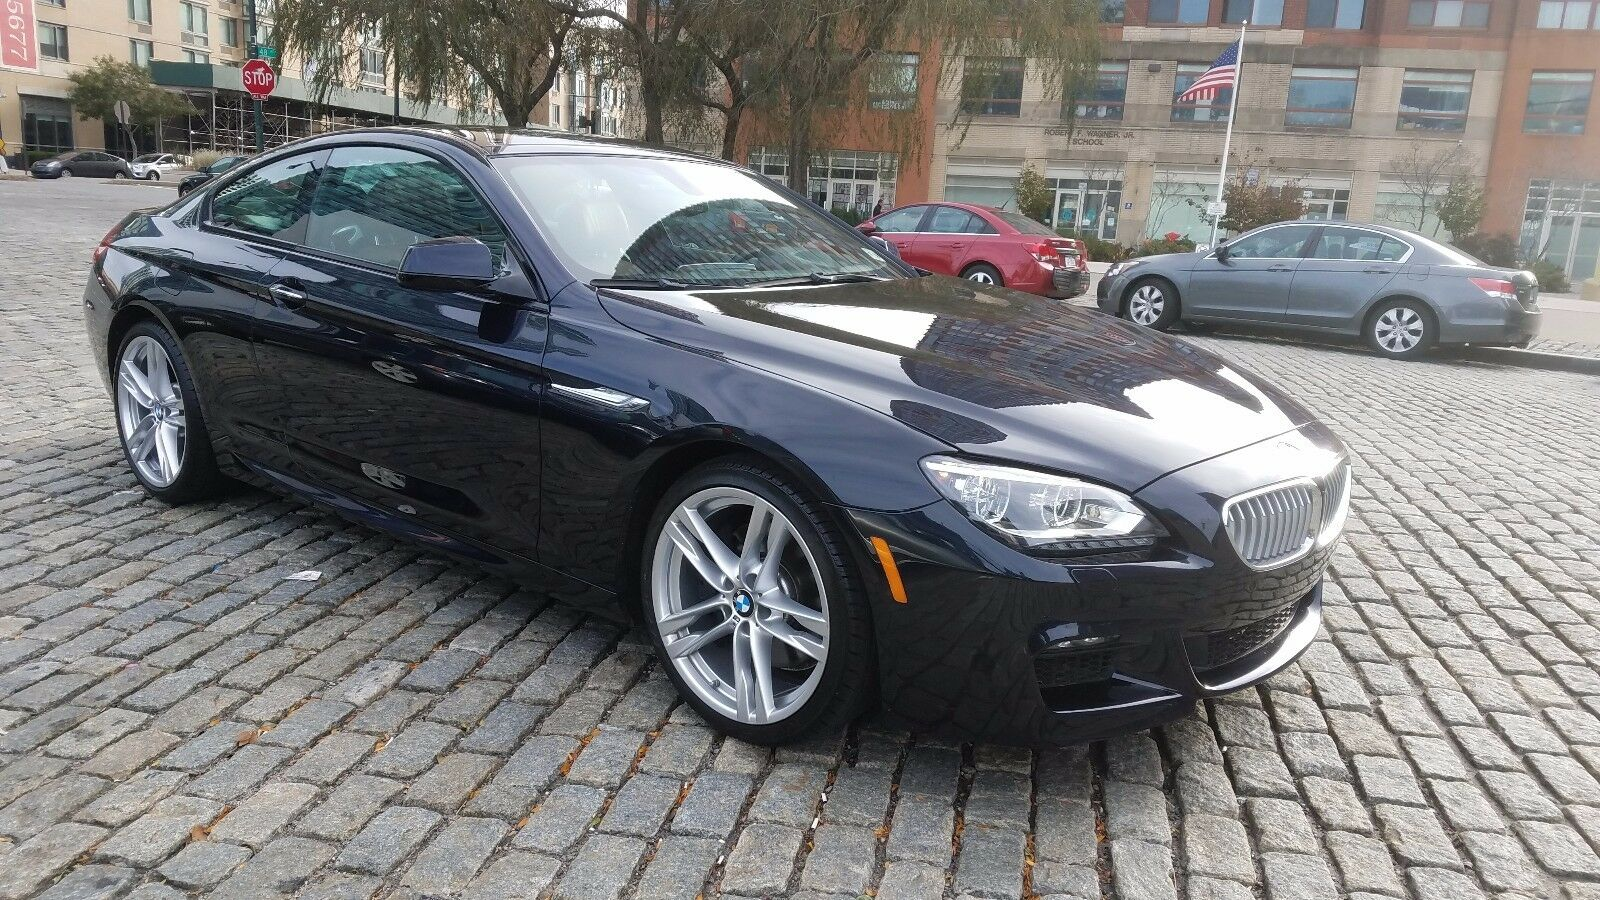 2014BMW 650I XDRIVE M PACKAGE,13K MILES,HEADSUP,LEATHERDASH,LED HEADLIGHT,